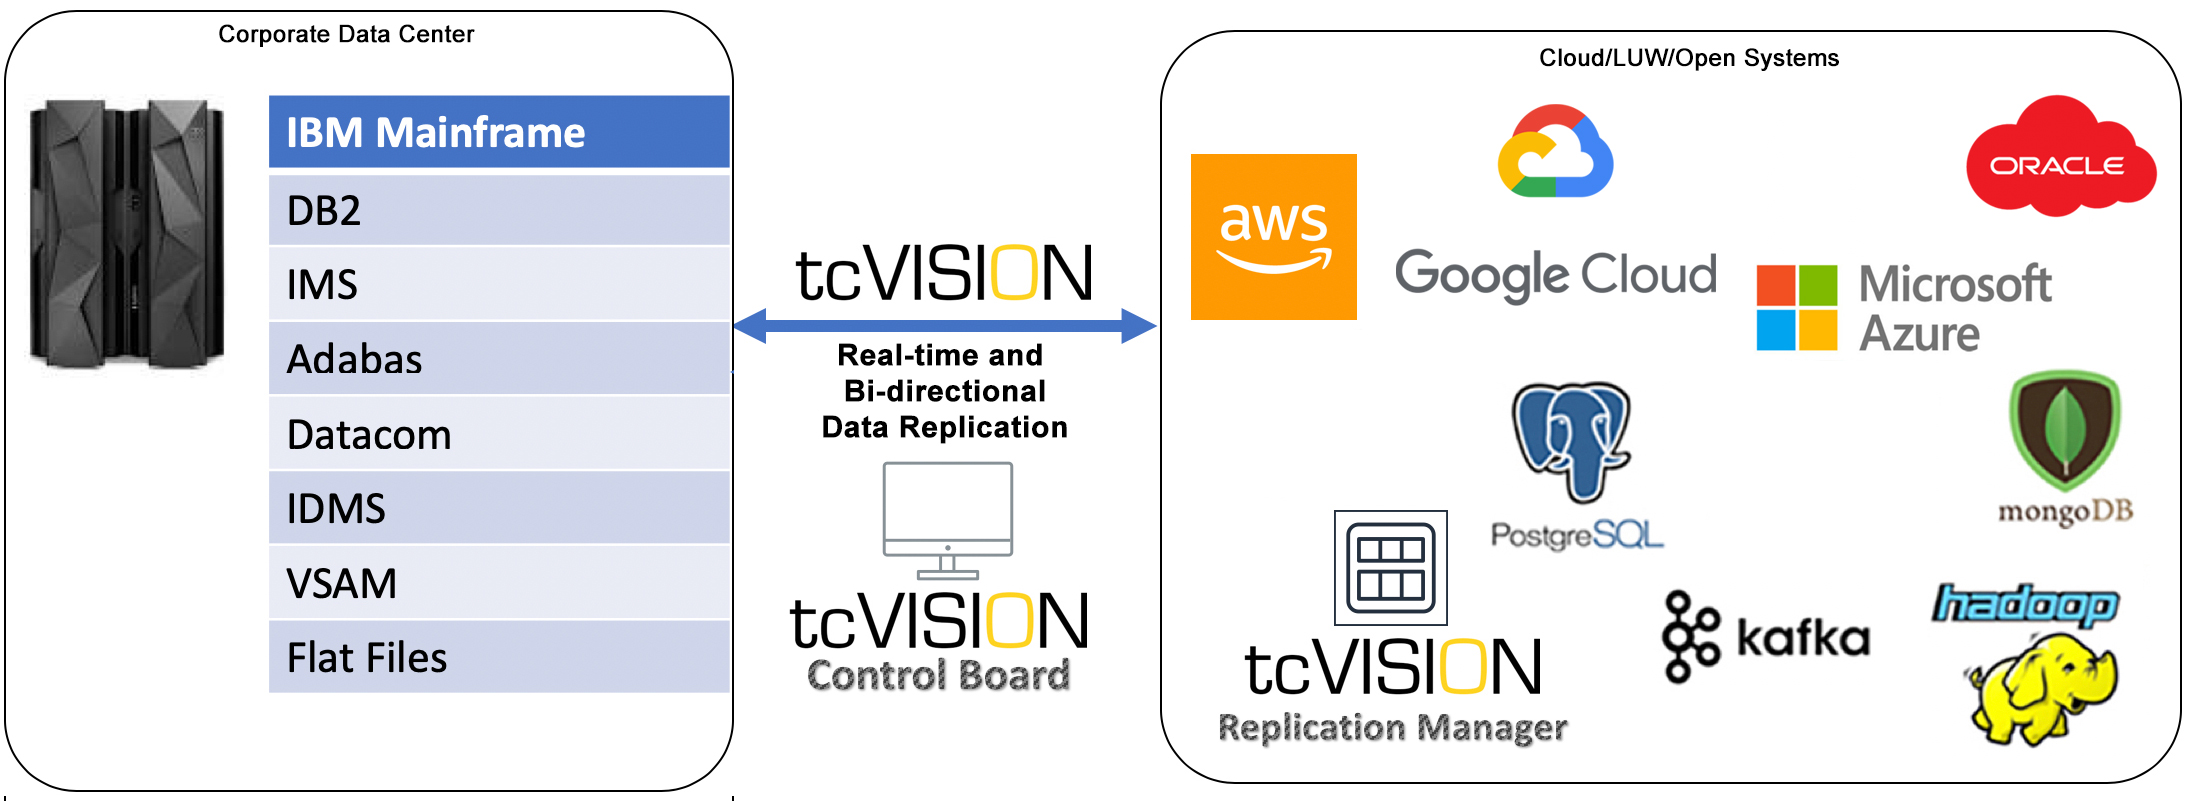 tcVISION_Overall_Diagram_General_Cloud01